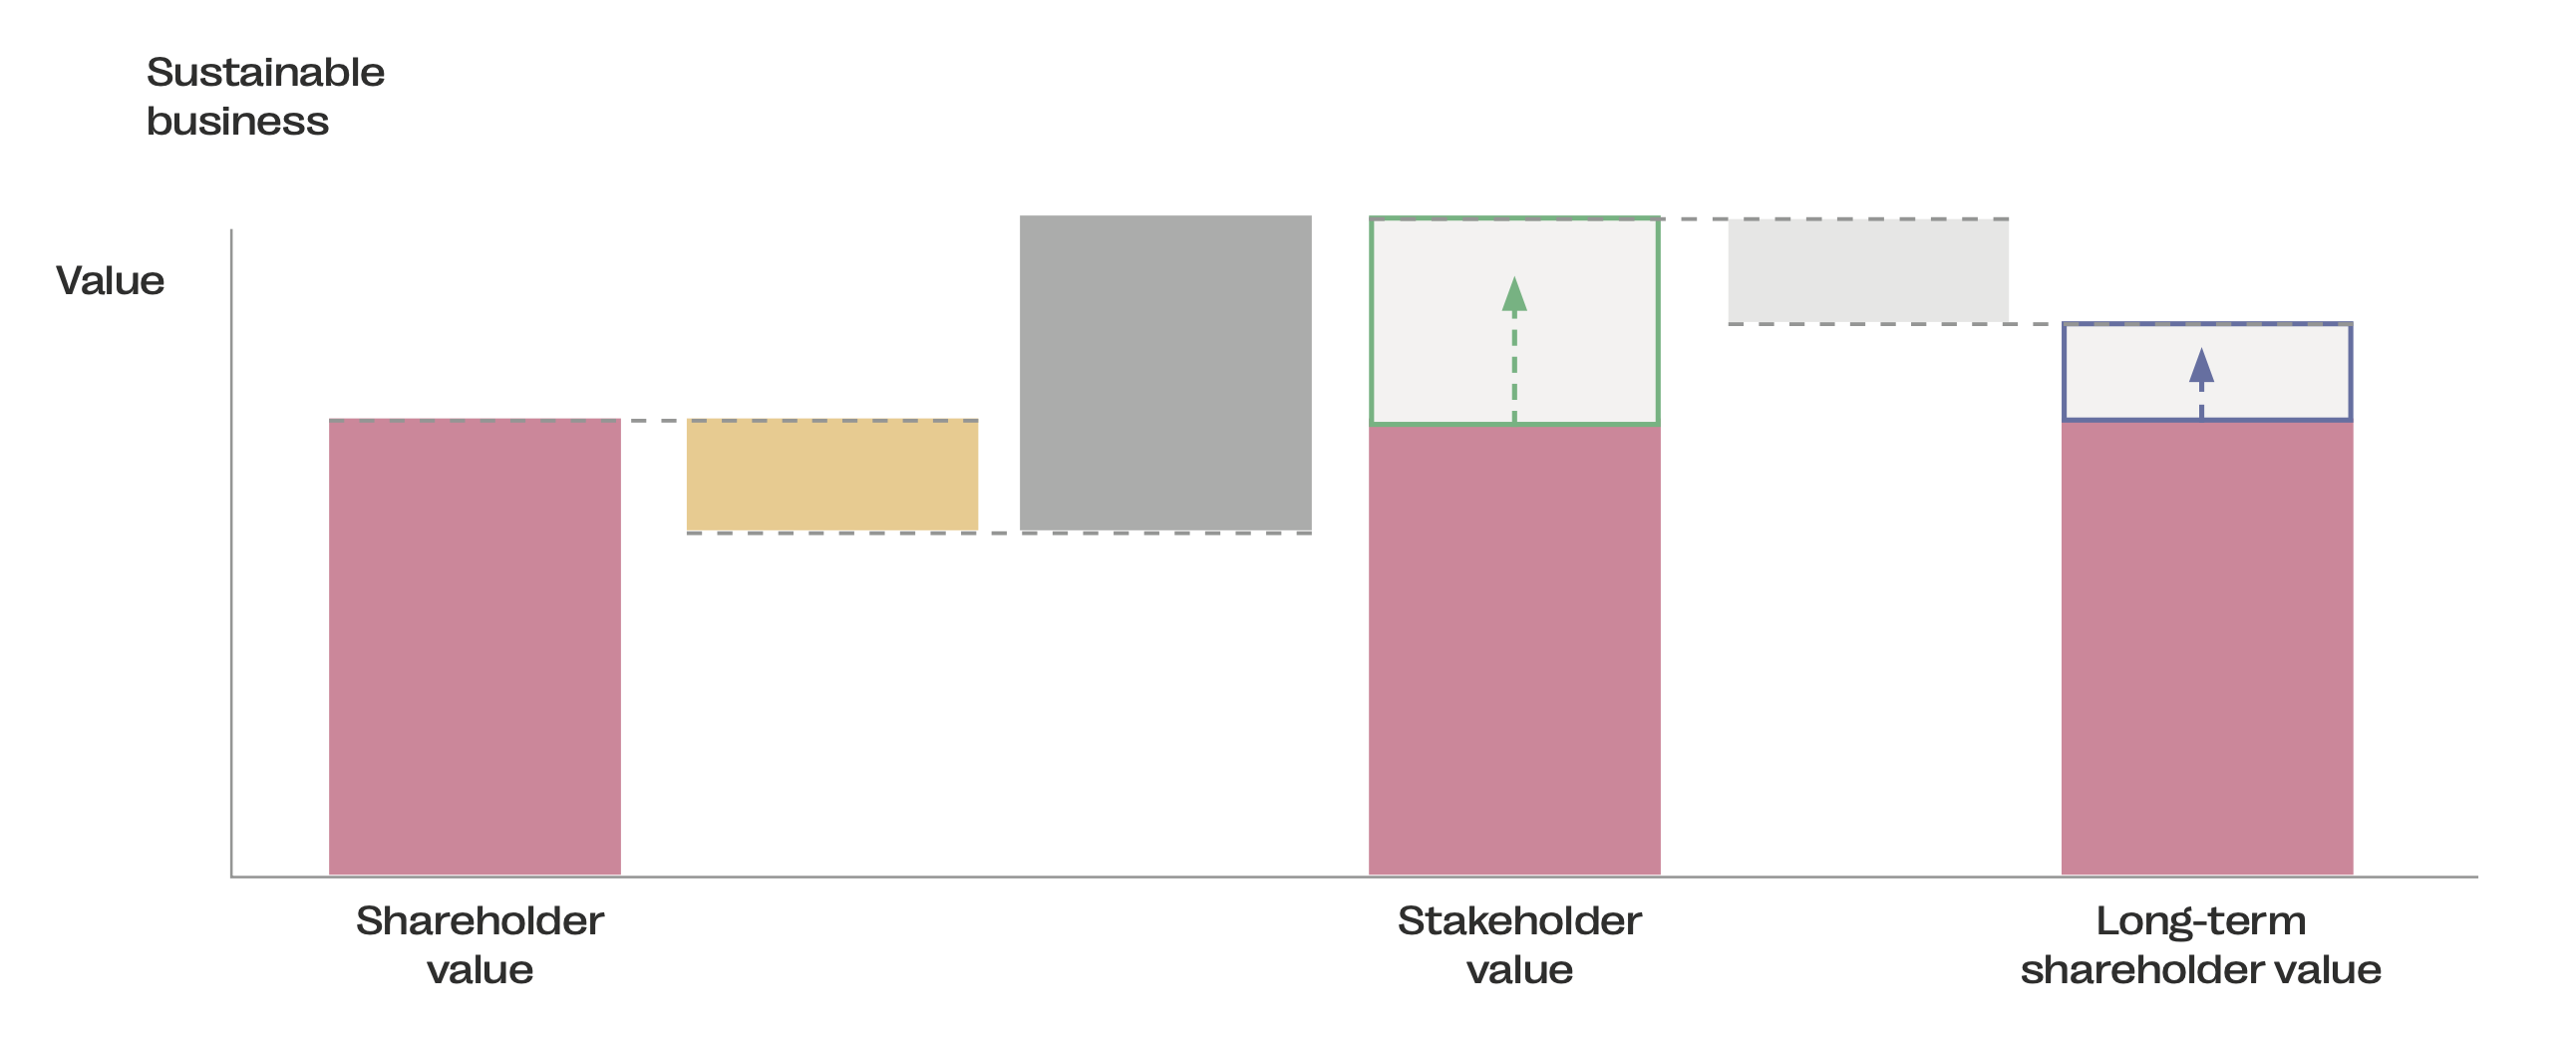 Chart showing the performance of an sustainable business